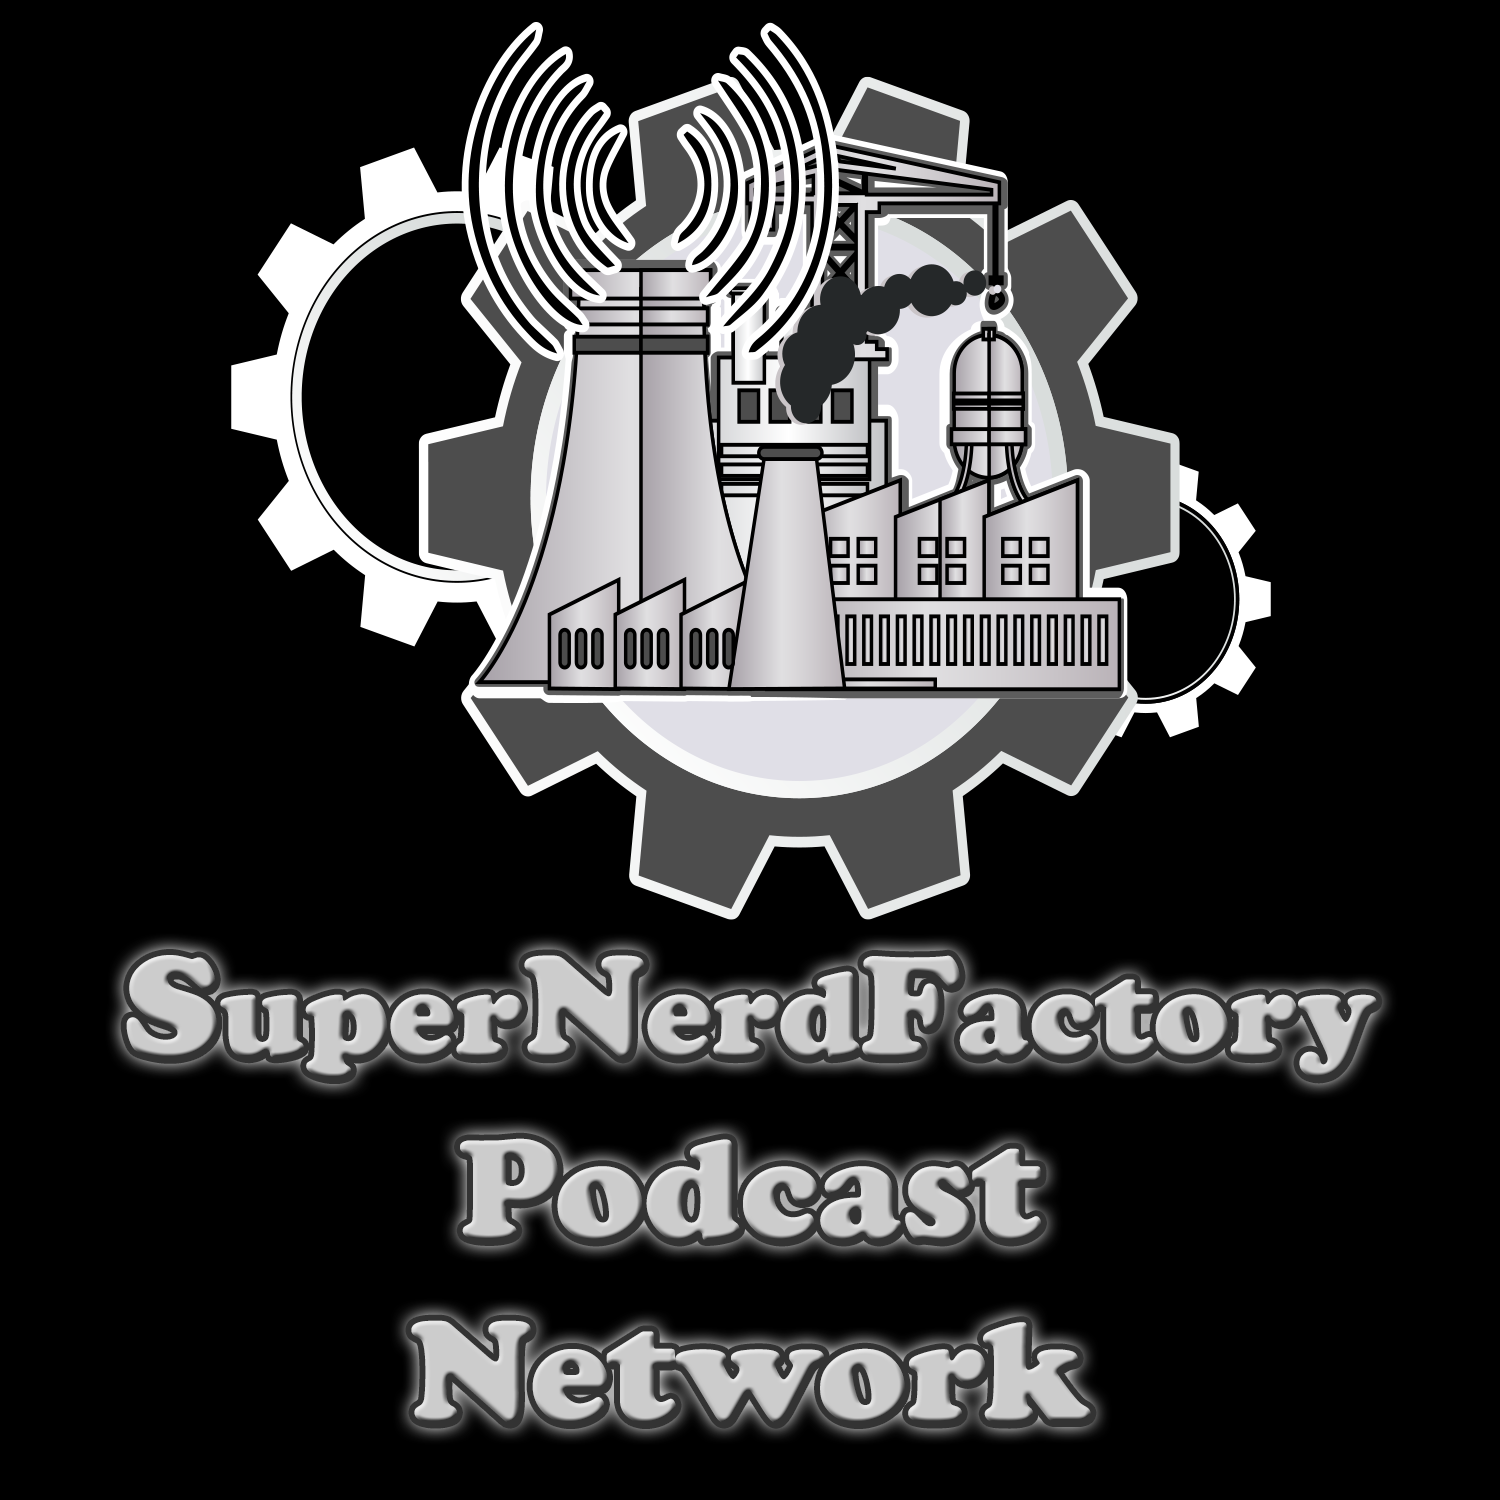 SuperNerdFactory's Podcast Network